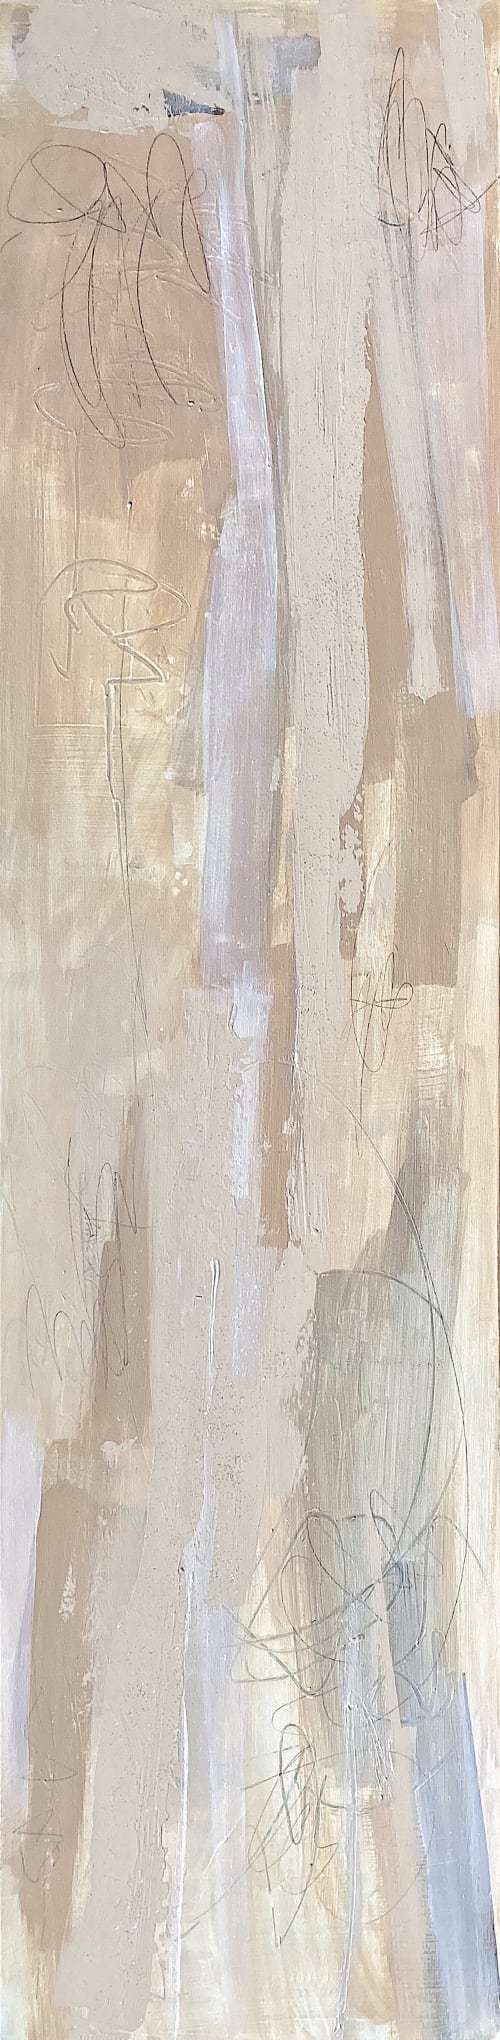 'THERE, THERE' original abstract painting by Linnea Heide   Paintings by Linnea Heide contemporary fine art